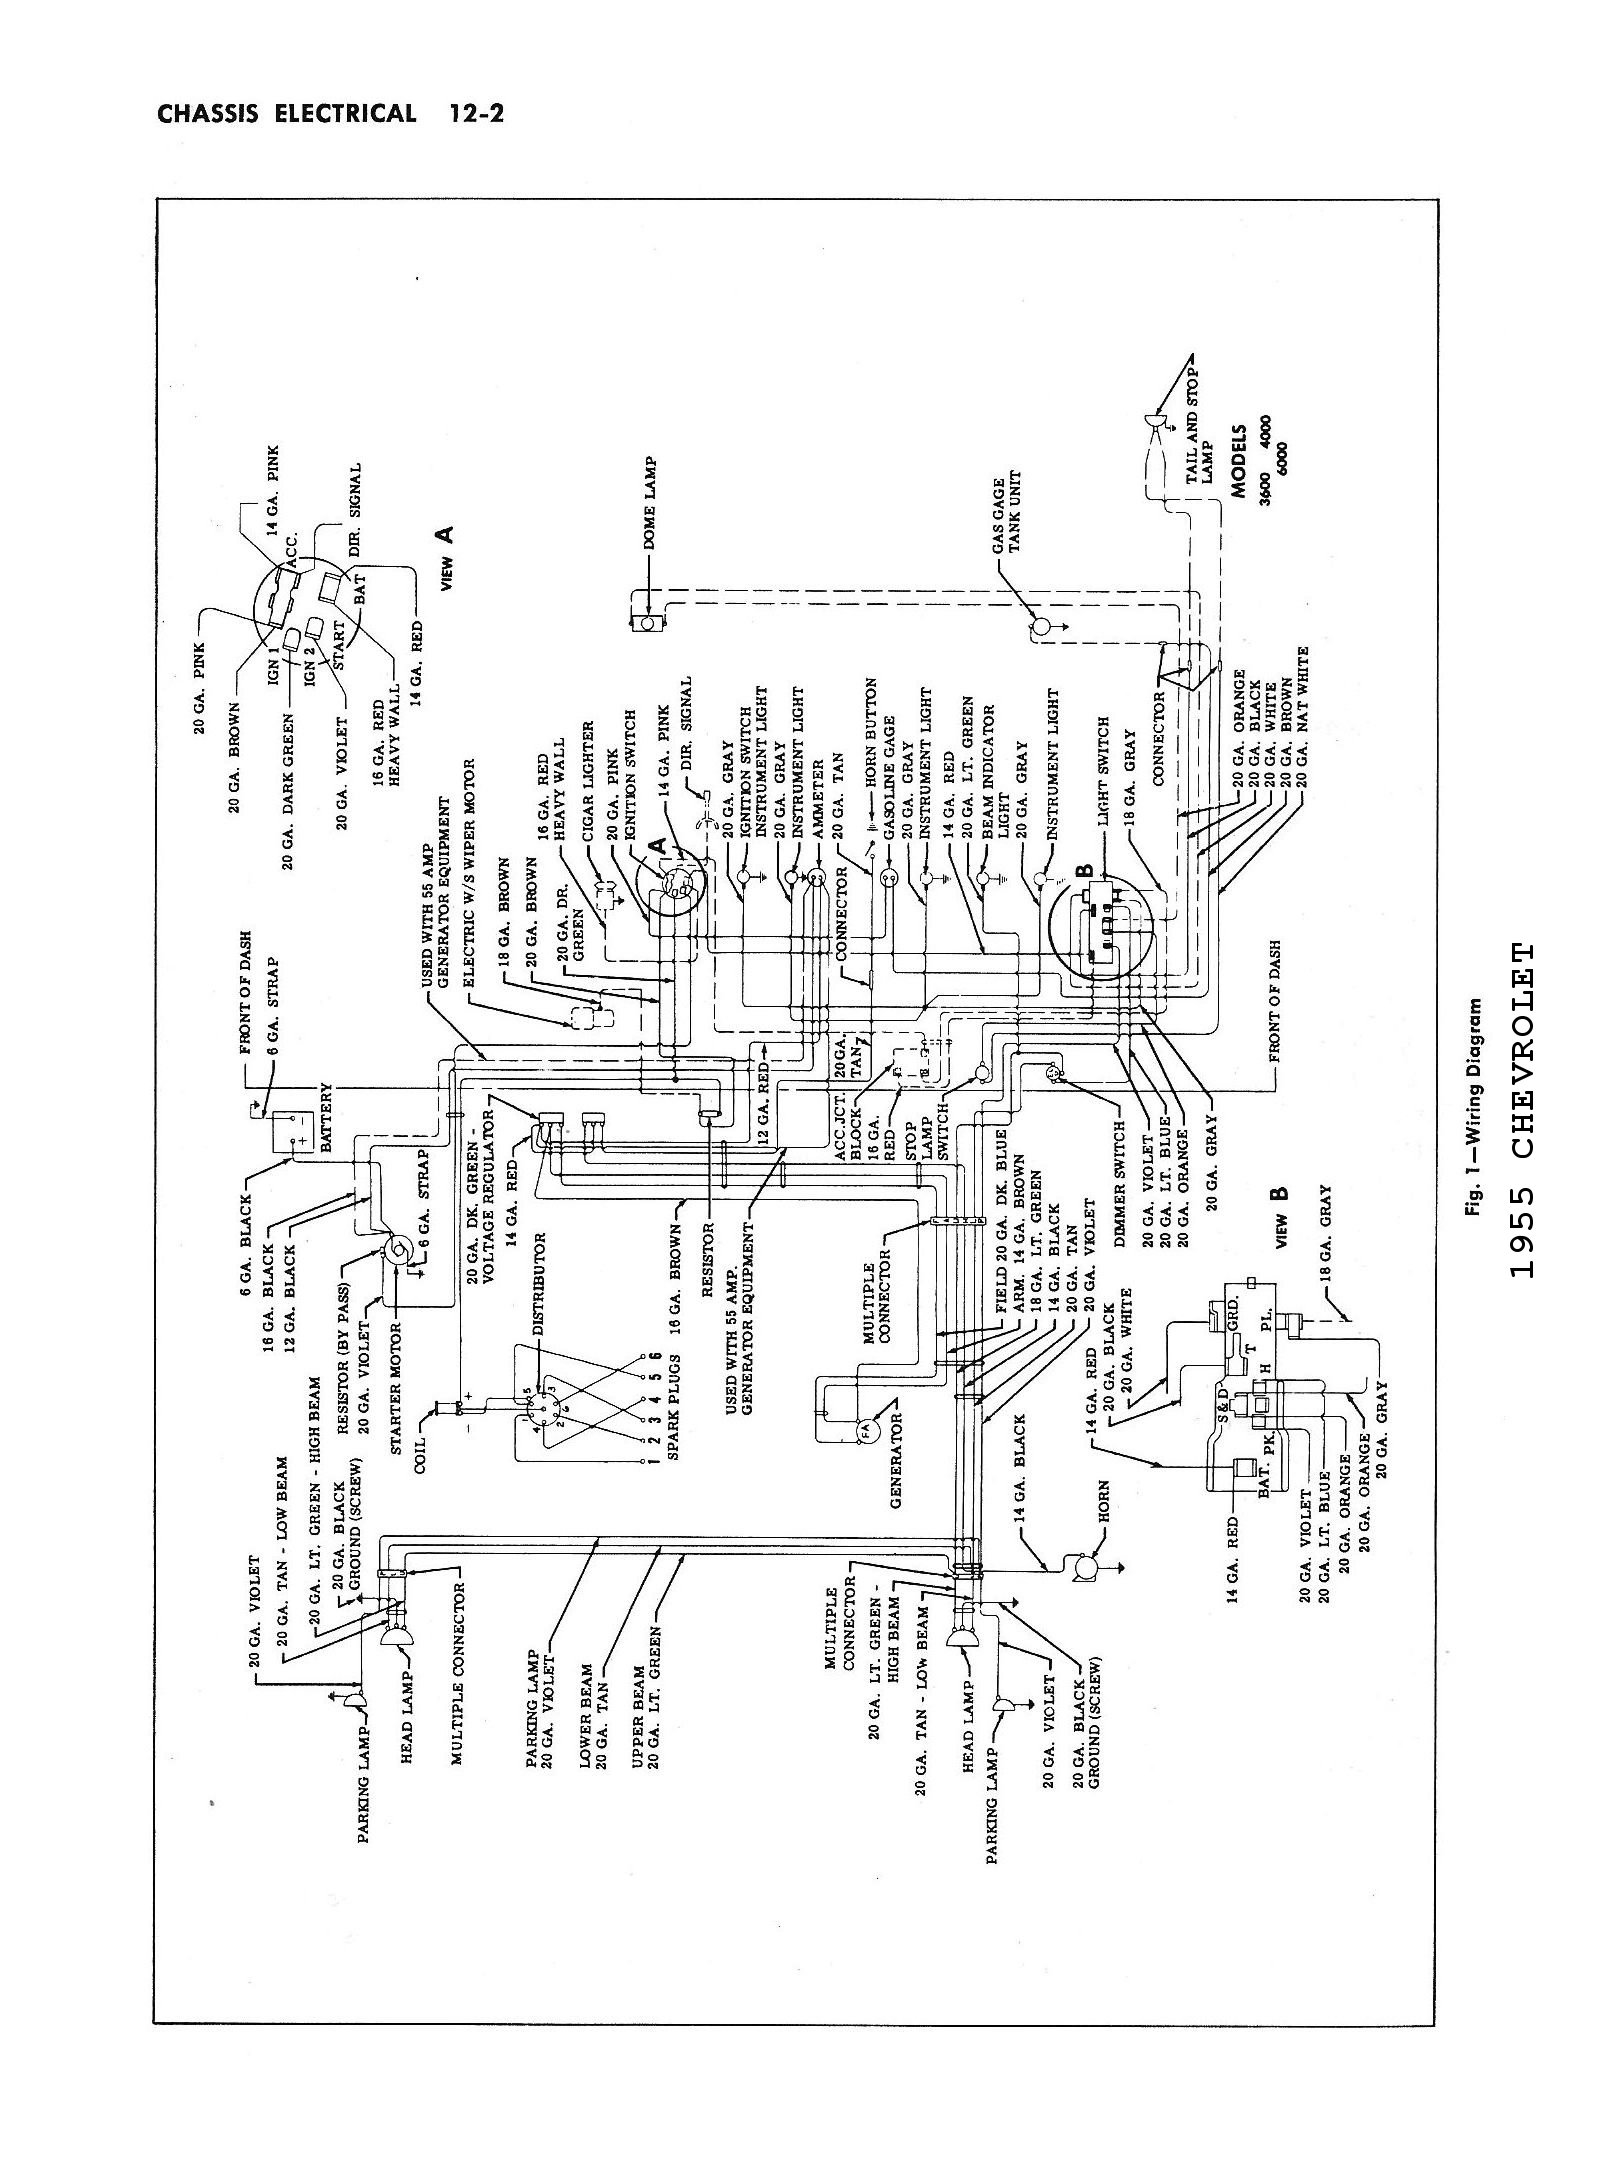 Stupendous Chevy Wiring Diagrams Wiring Cloud Timewinrebemohammedshrineorg